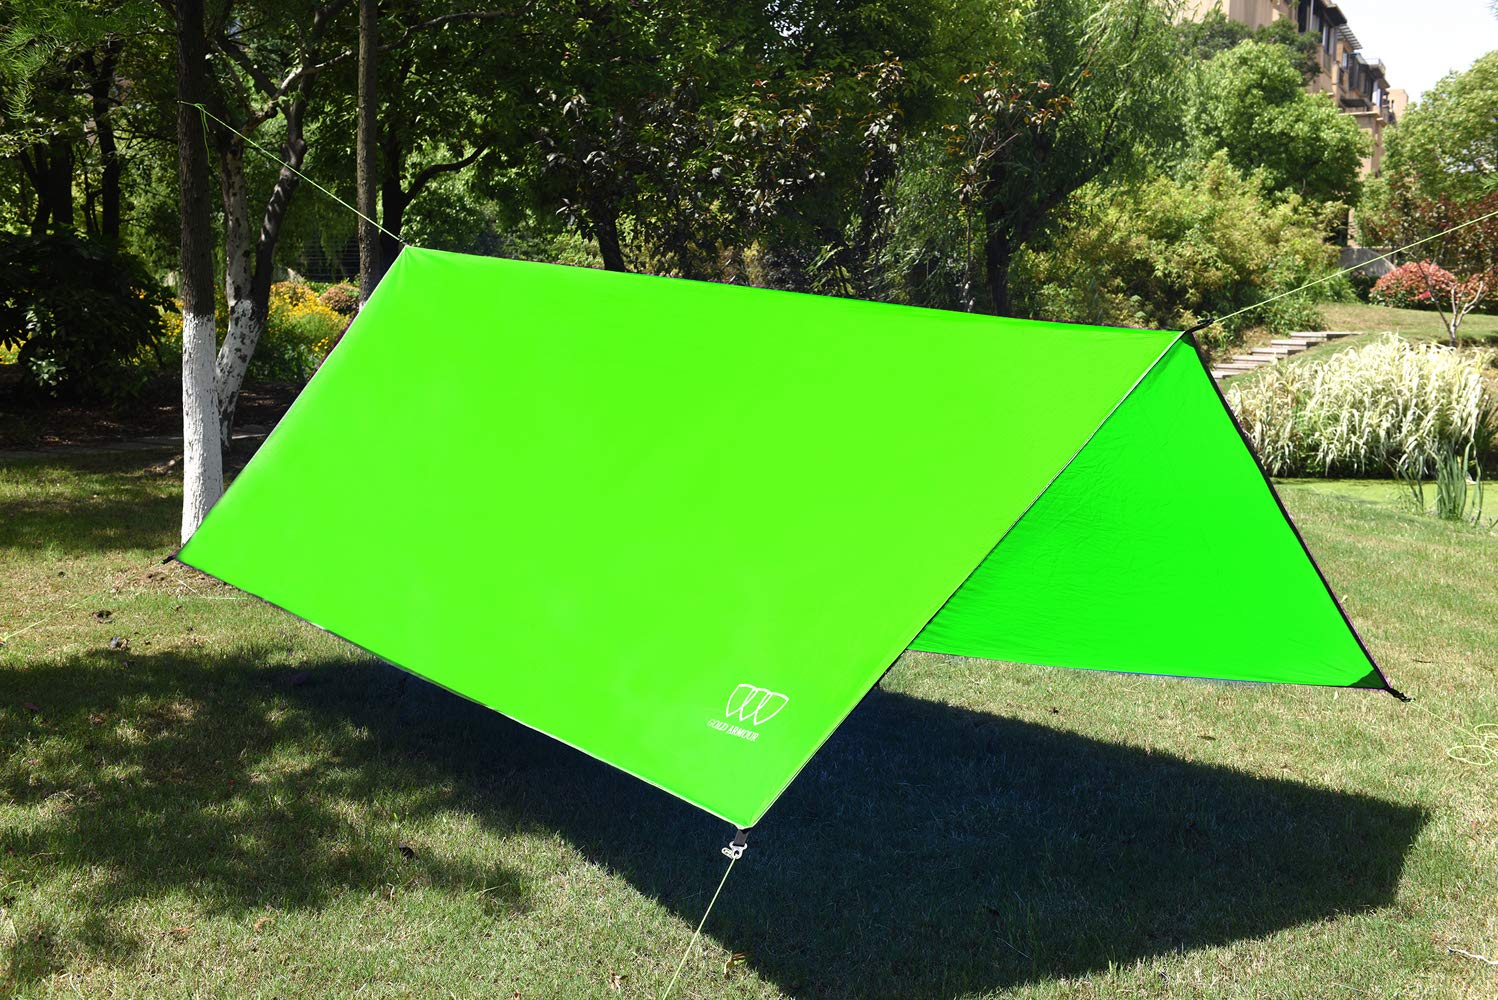 Gold Armour 12/' XL TARP Hammock Waterproof RAIN Fly Tent TARP 185 Centerline Multiple Colors Survival Gear Backpacking Camping Accessories Stakes Included Lightweight Ripstop Fabric